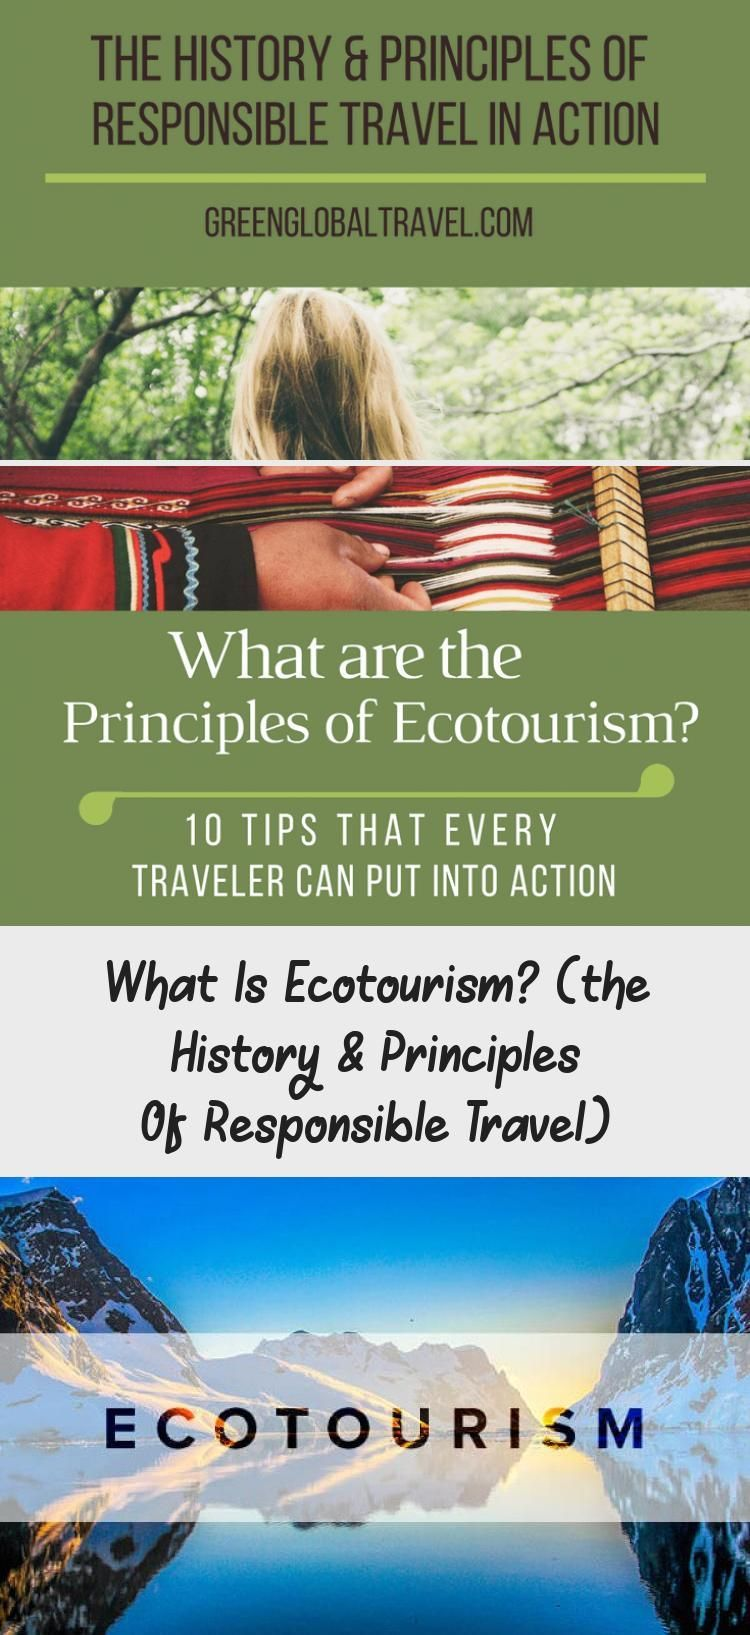 Ecotourism Was Defined In 1990 As Responsible Travel To Natural